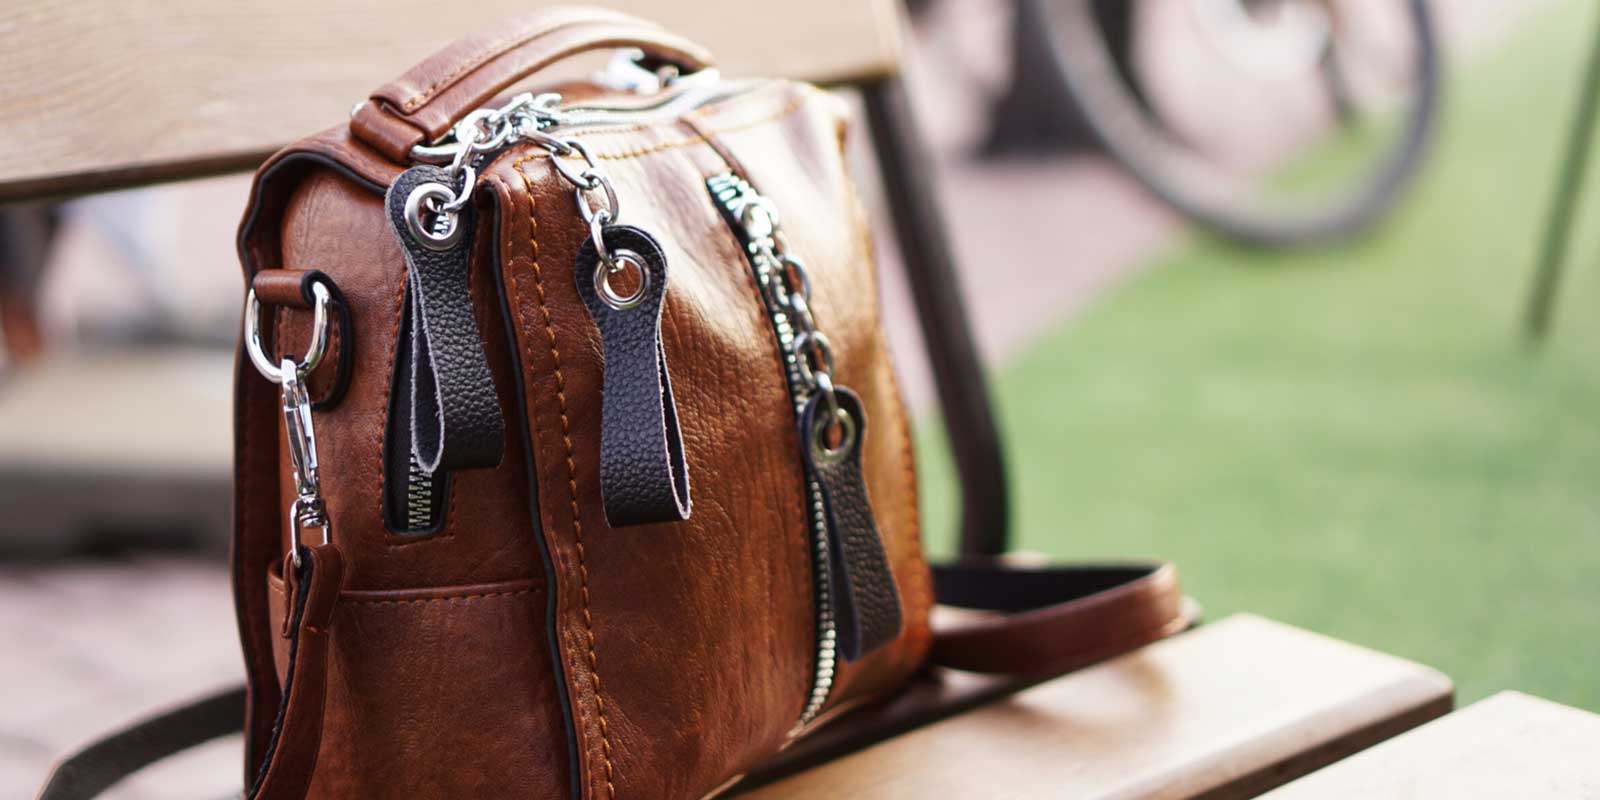 The Color of Satchel and Messenger Bag